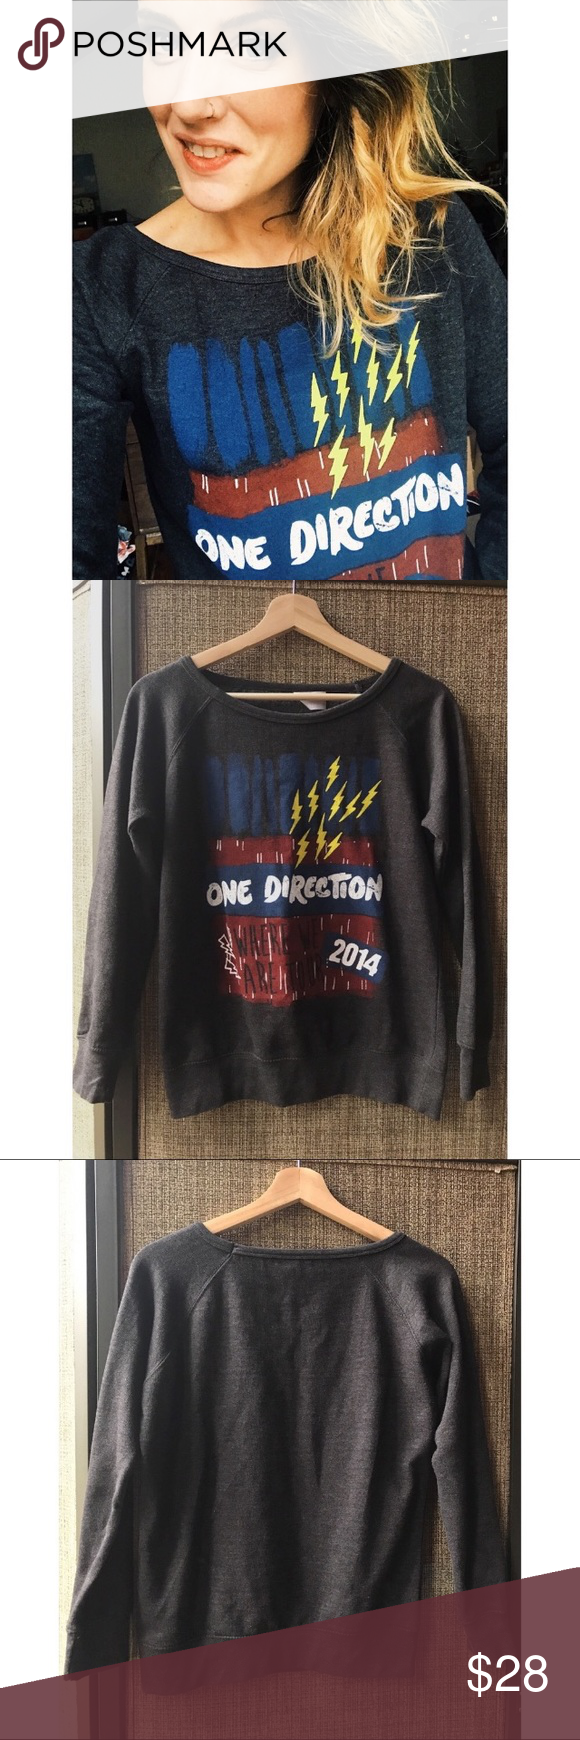 One Direction Sweatshirt One Direction Band Top Super fab and cozy One Direction sweatshirt from their 2014 tour! Size small. Pit to pit: 19 inches Length: 22 inches one direction Tops #onedirection2014 One Direction Sweatshirt One Direction Band Top Super fab and cozy One Direction sweatshirt from their 2014 tour! Size small. Pit to pit: 19 inches Length: 22 inches one direction Tops #onedirection2014 One Direction Sweatshirt One Direction Band Top Super fab and cozy One Direction sweatshirt fr #onedirection2014